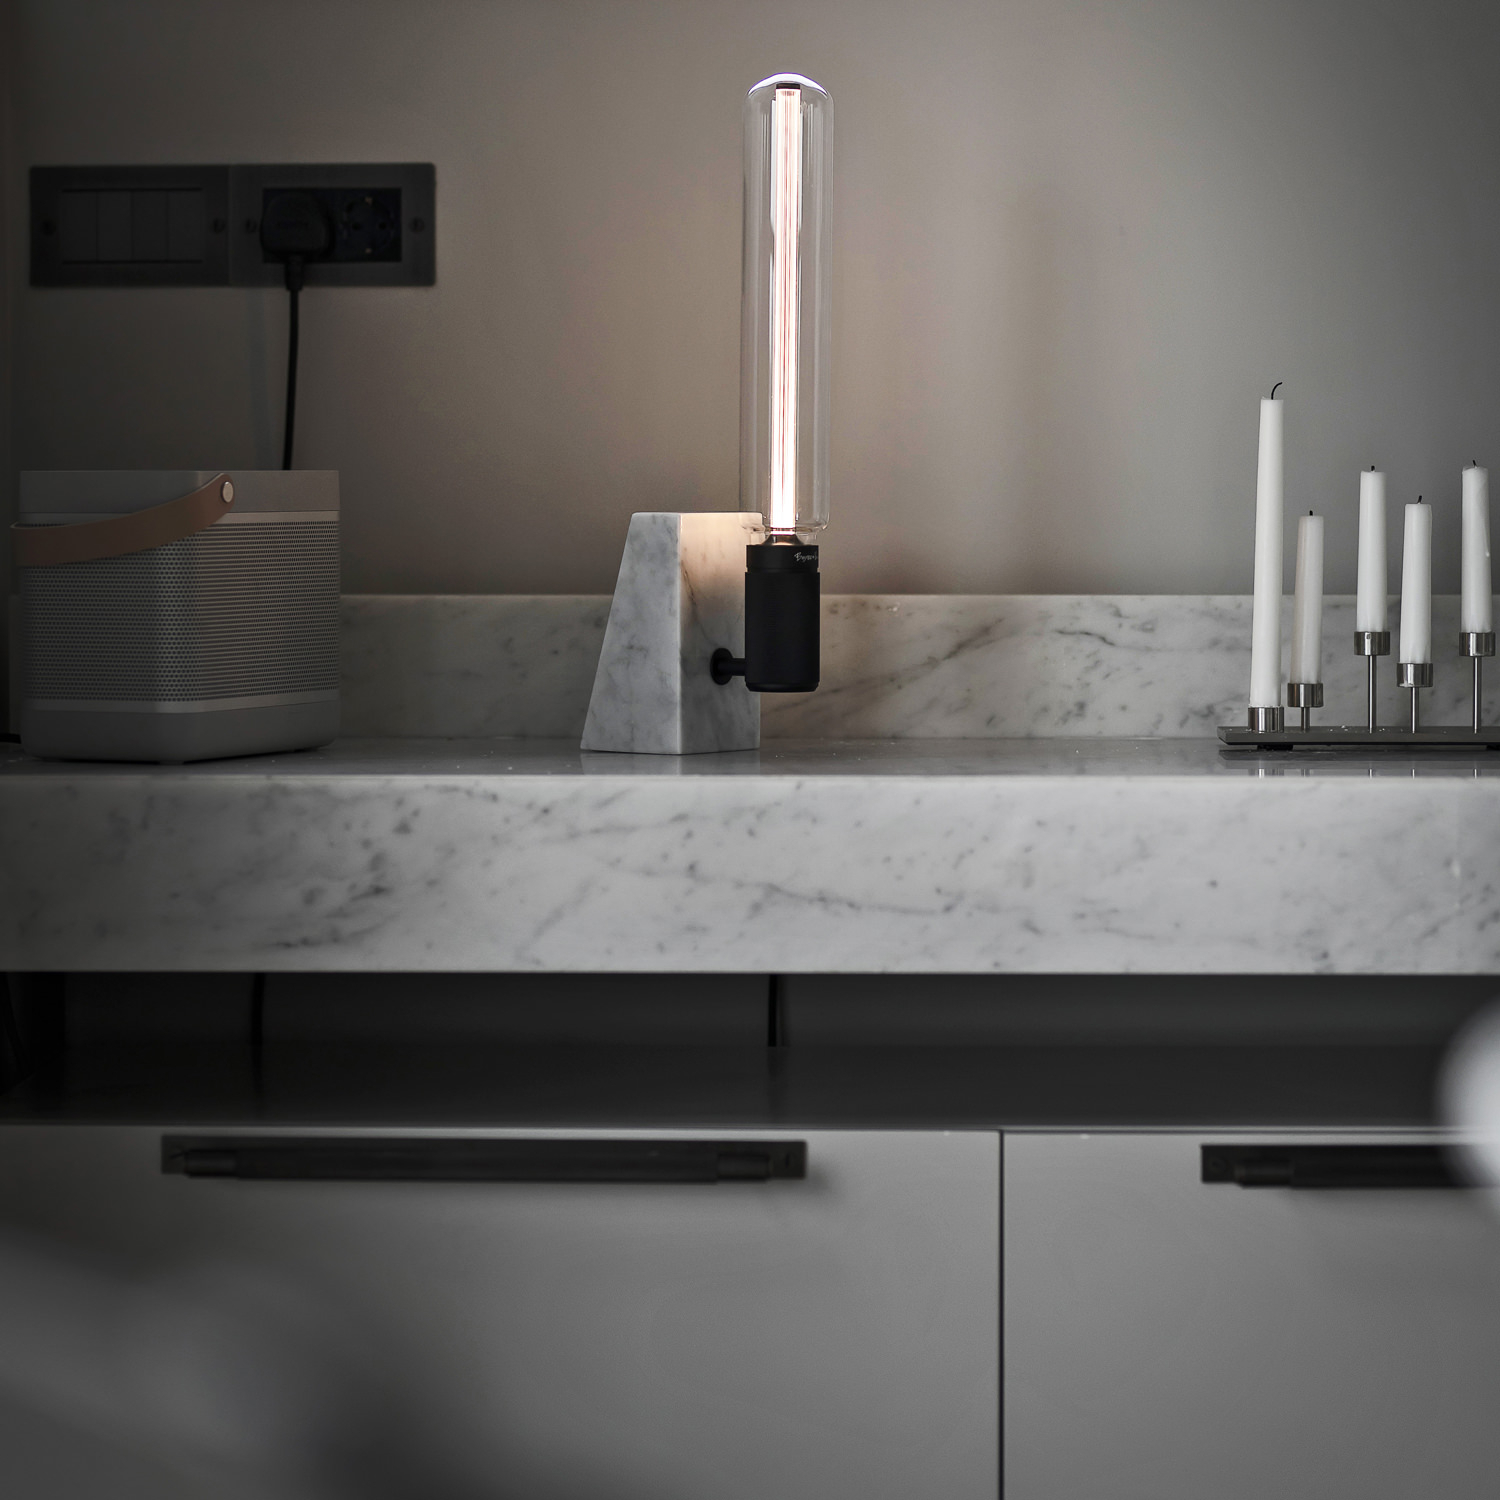 buster-_-punch-stoned-table-light-polished-white-marble-machined-steel-candelabra-pull-bar-large-plate-smoked-bronze-lifestyle-interior-for-web_3_1.jpg